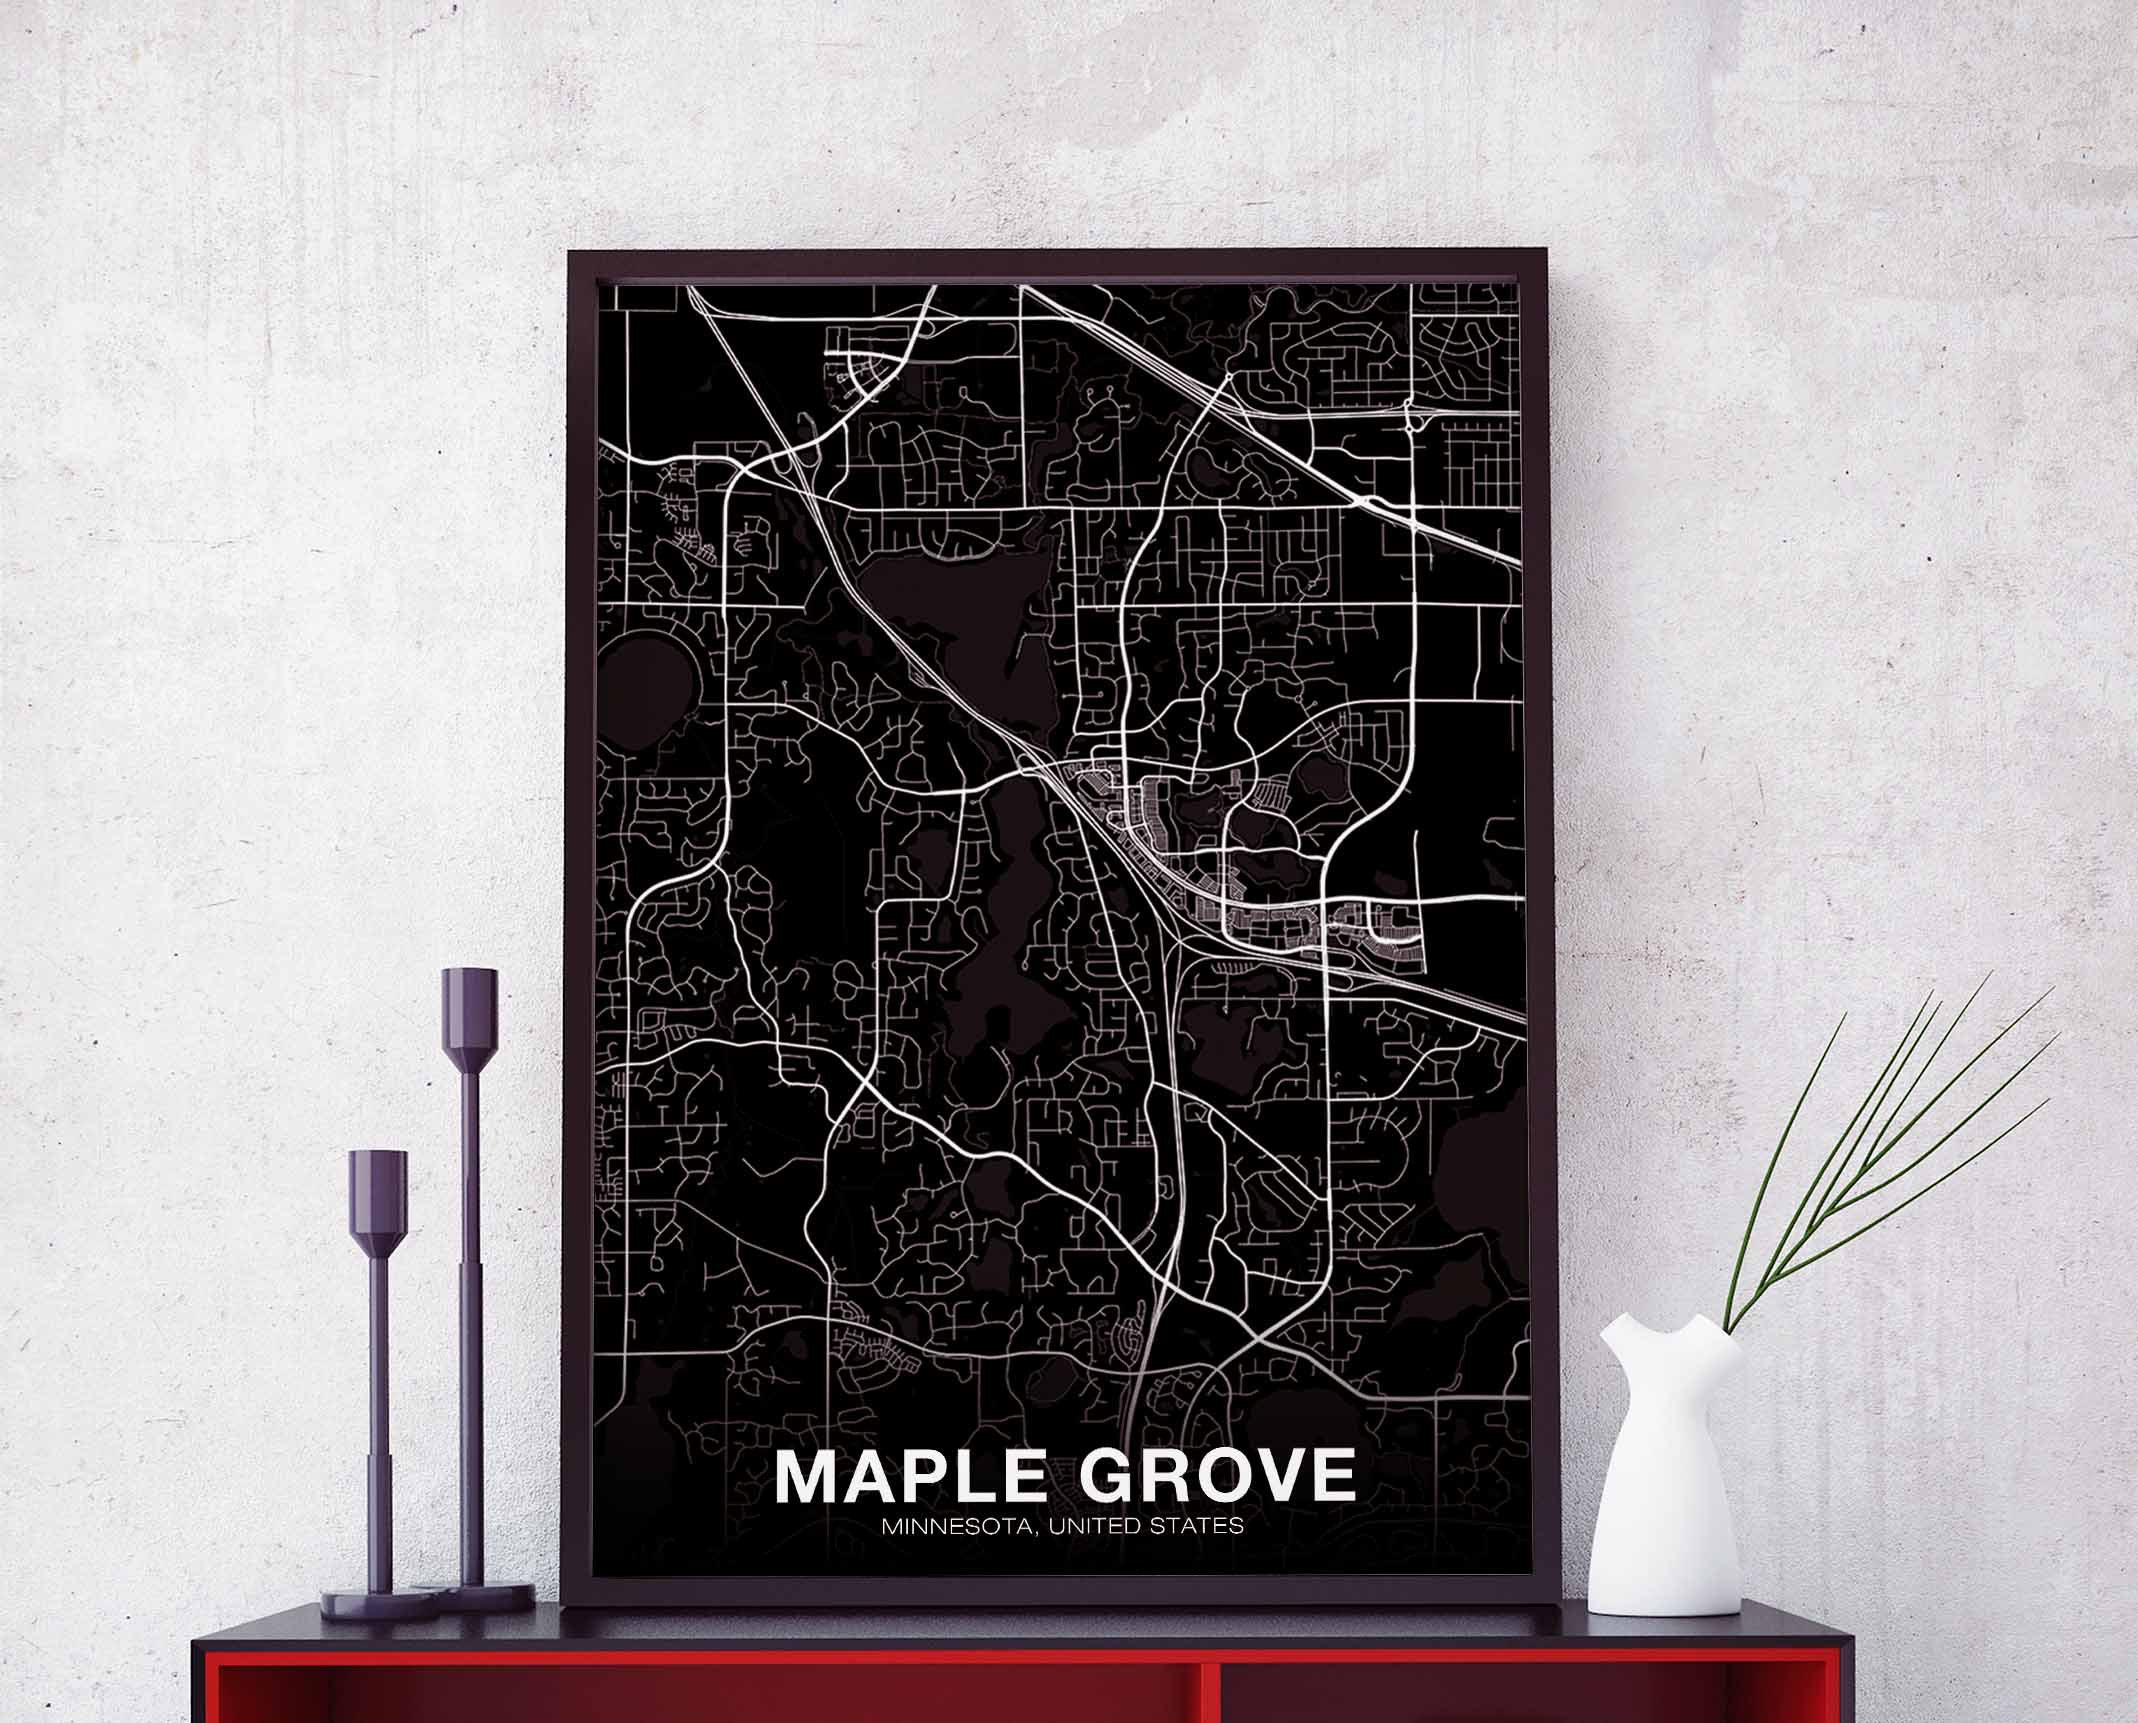 Maple grove mn map   Etsy MAPLE GROVE Minnesota MN usa map poster black white wall design modern  motto scandinavian minimal nordic housewarming travel bedroom